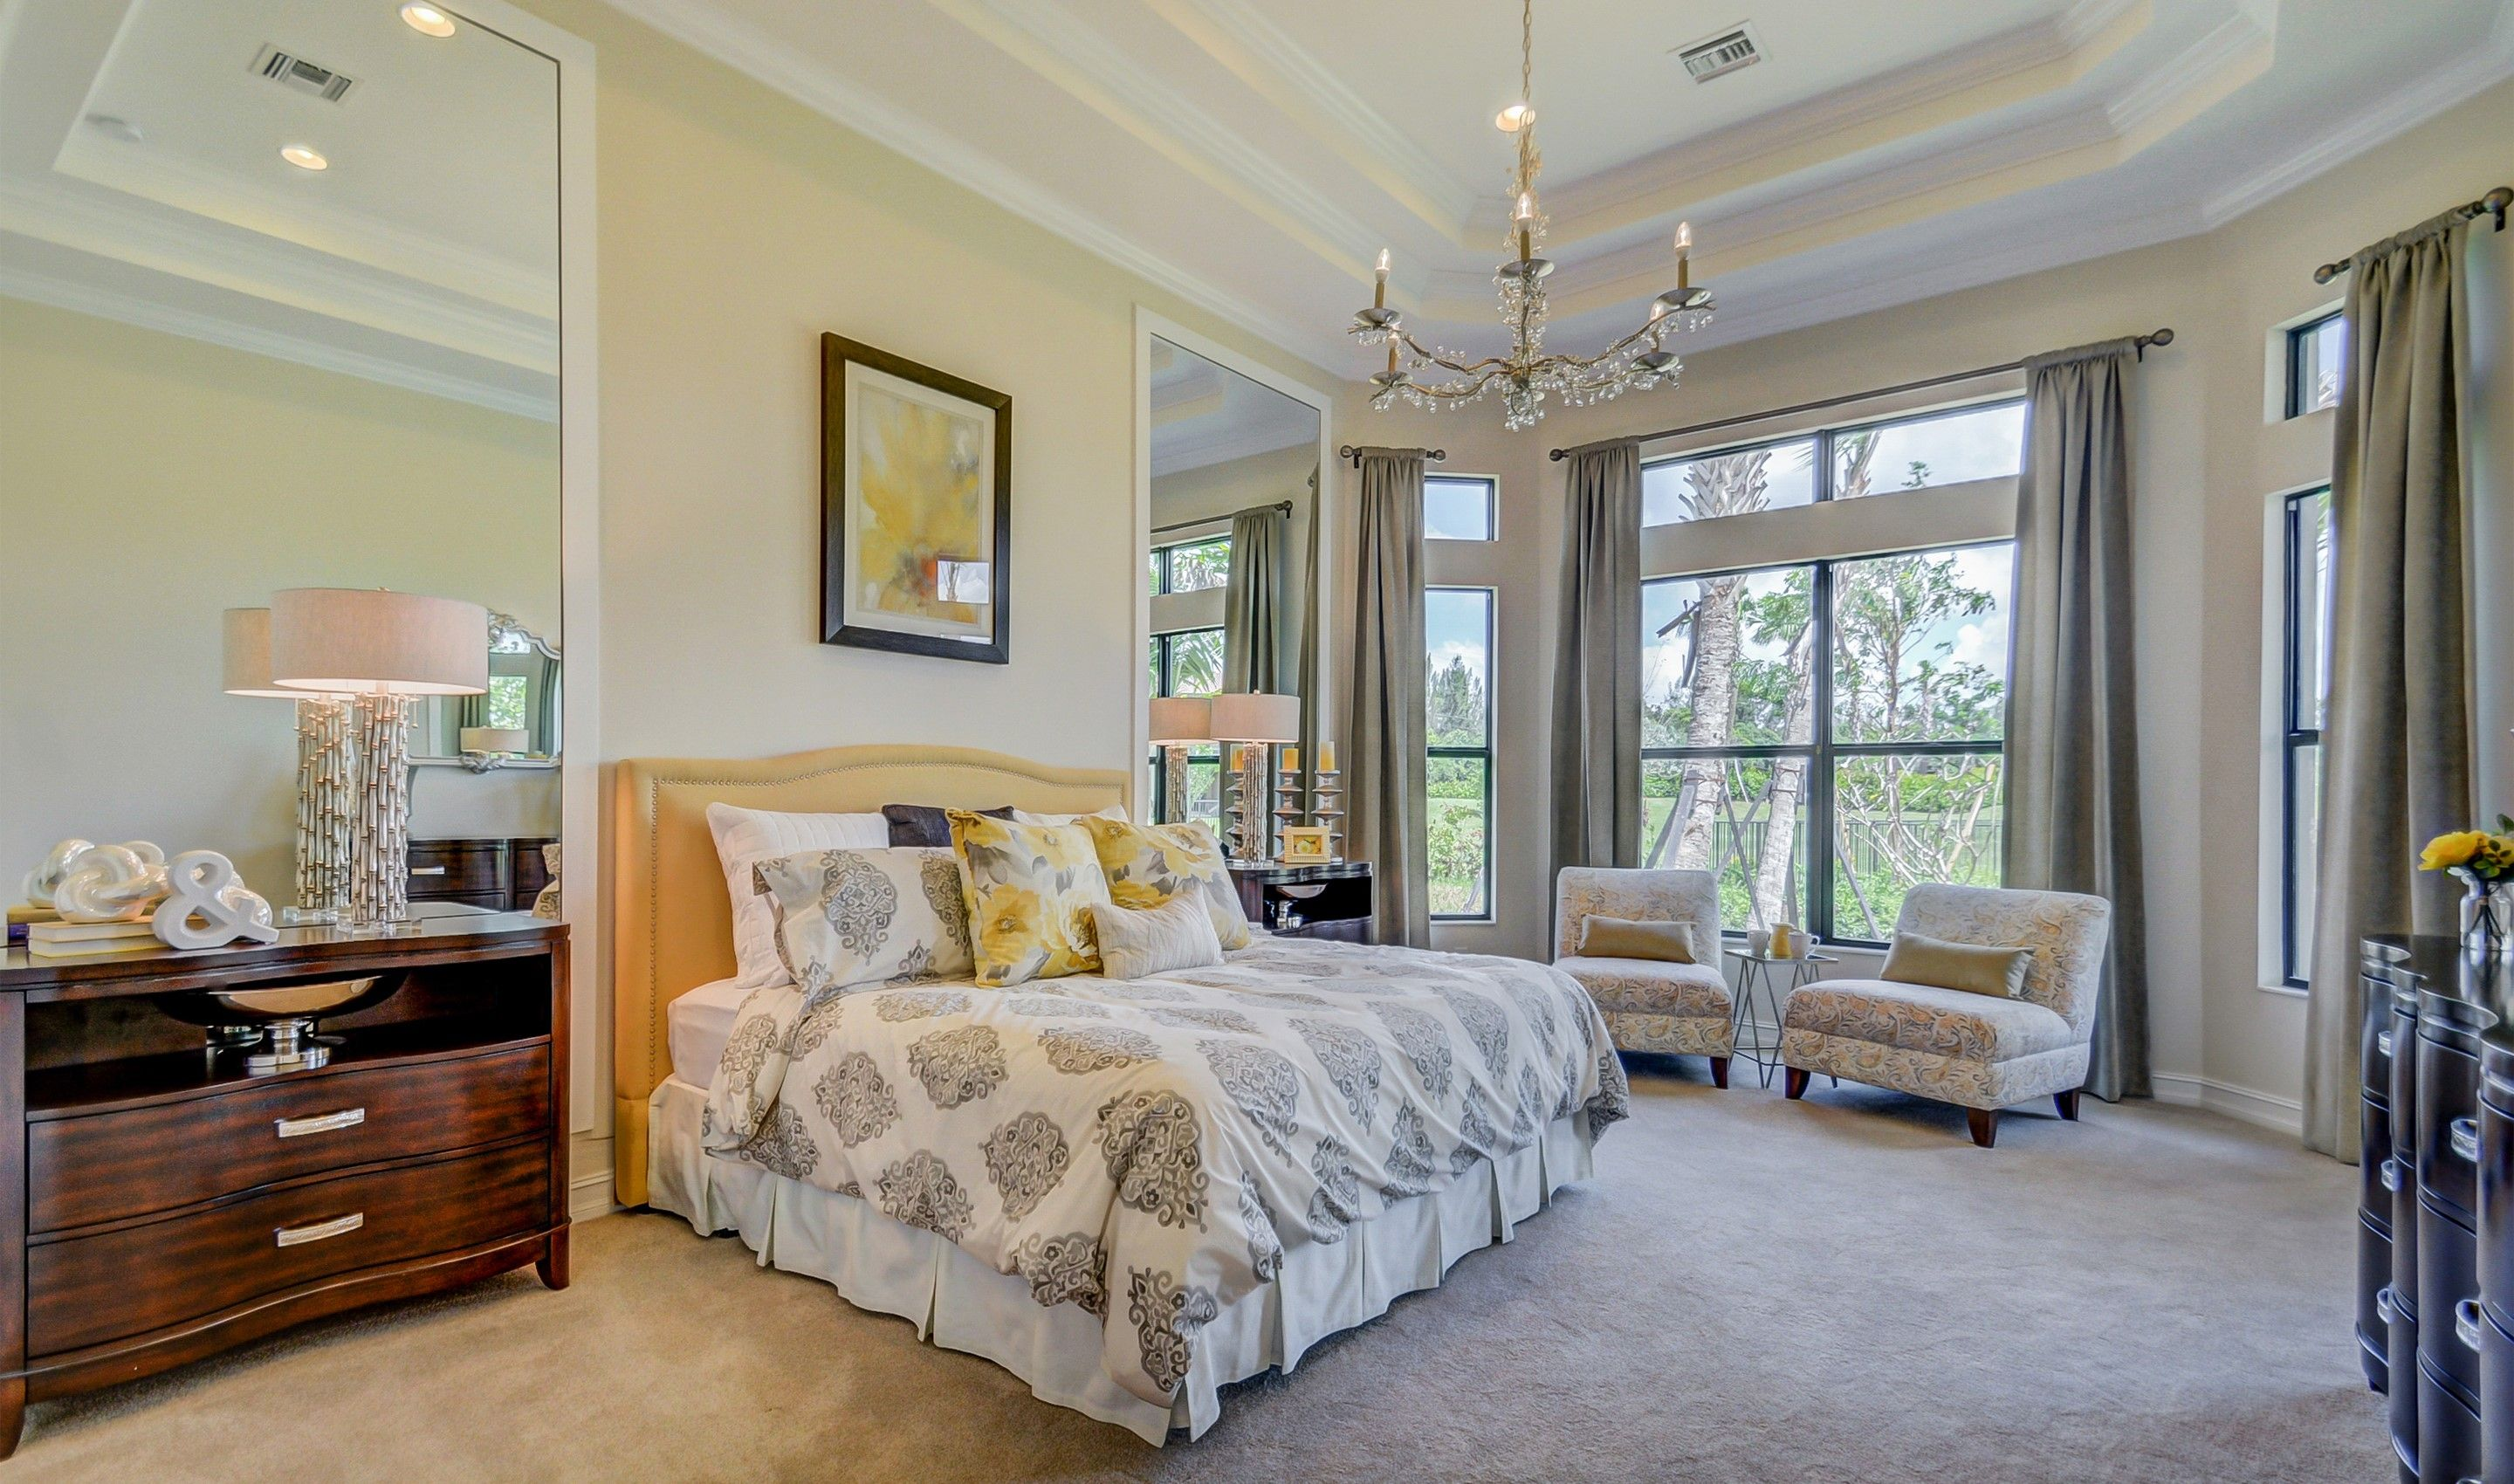 Bedroom featured in the Opal By K. Hovnanian's® Four Seasons in Broward County-Ft. Lauderdale, FL